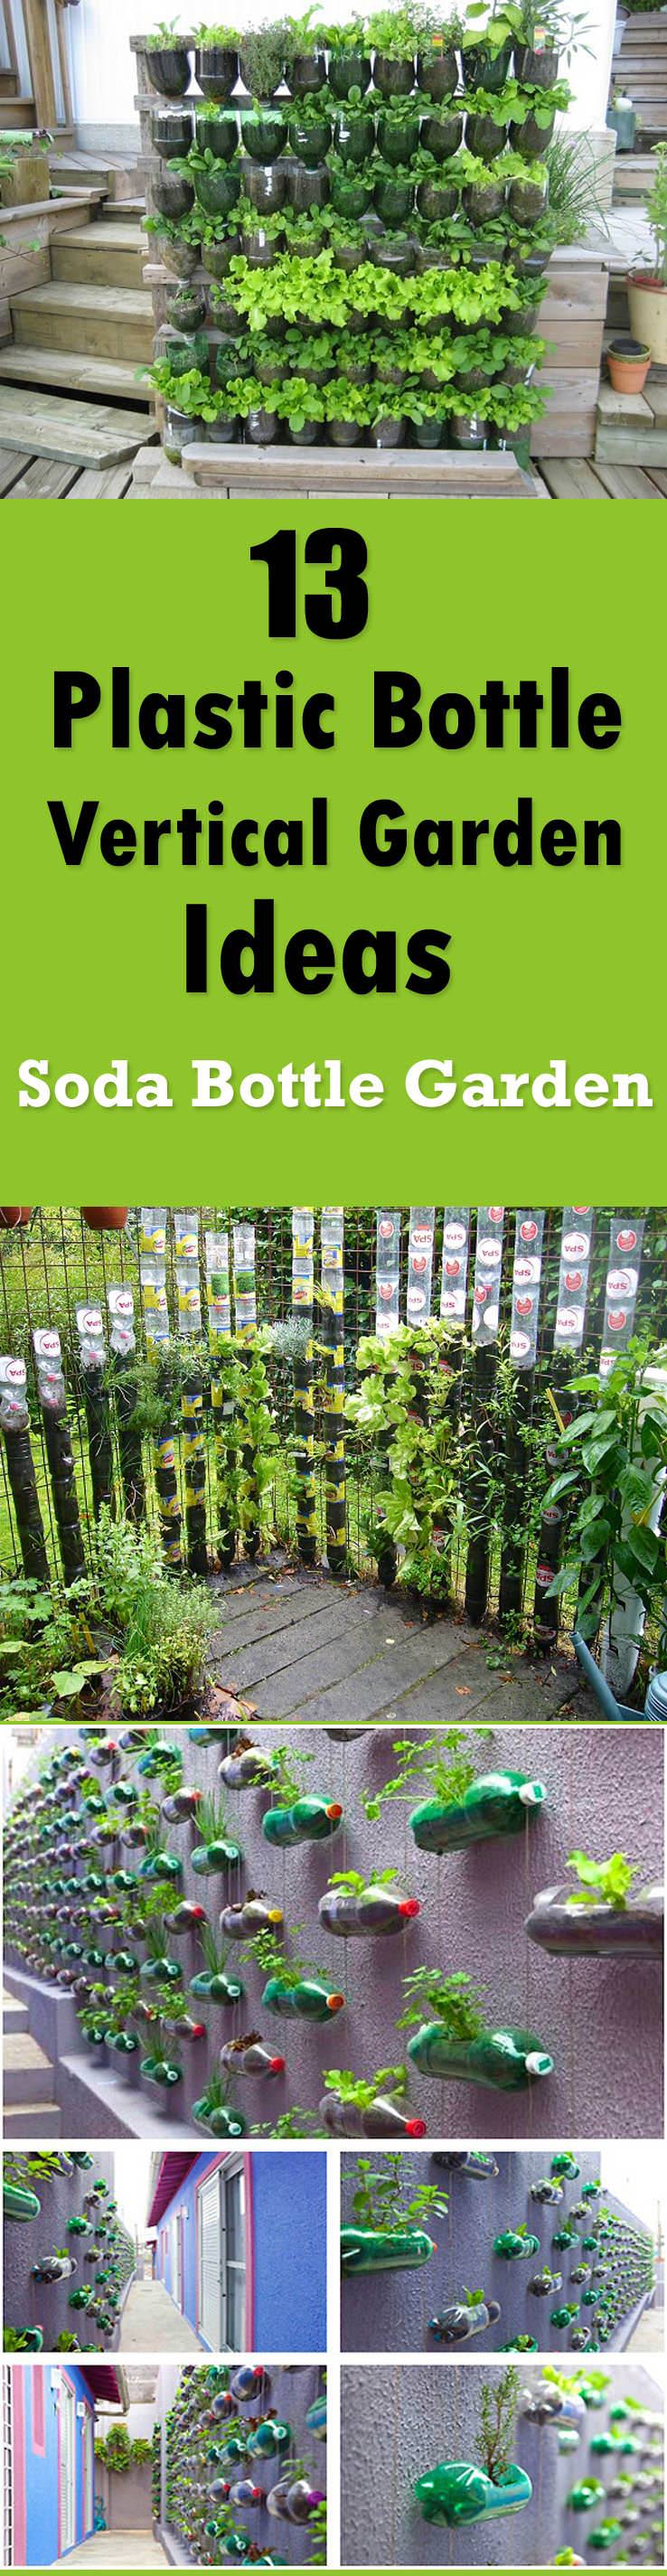 plastic bottle verticle garden ideas - Diy Vegetable Garden Ideas